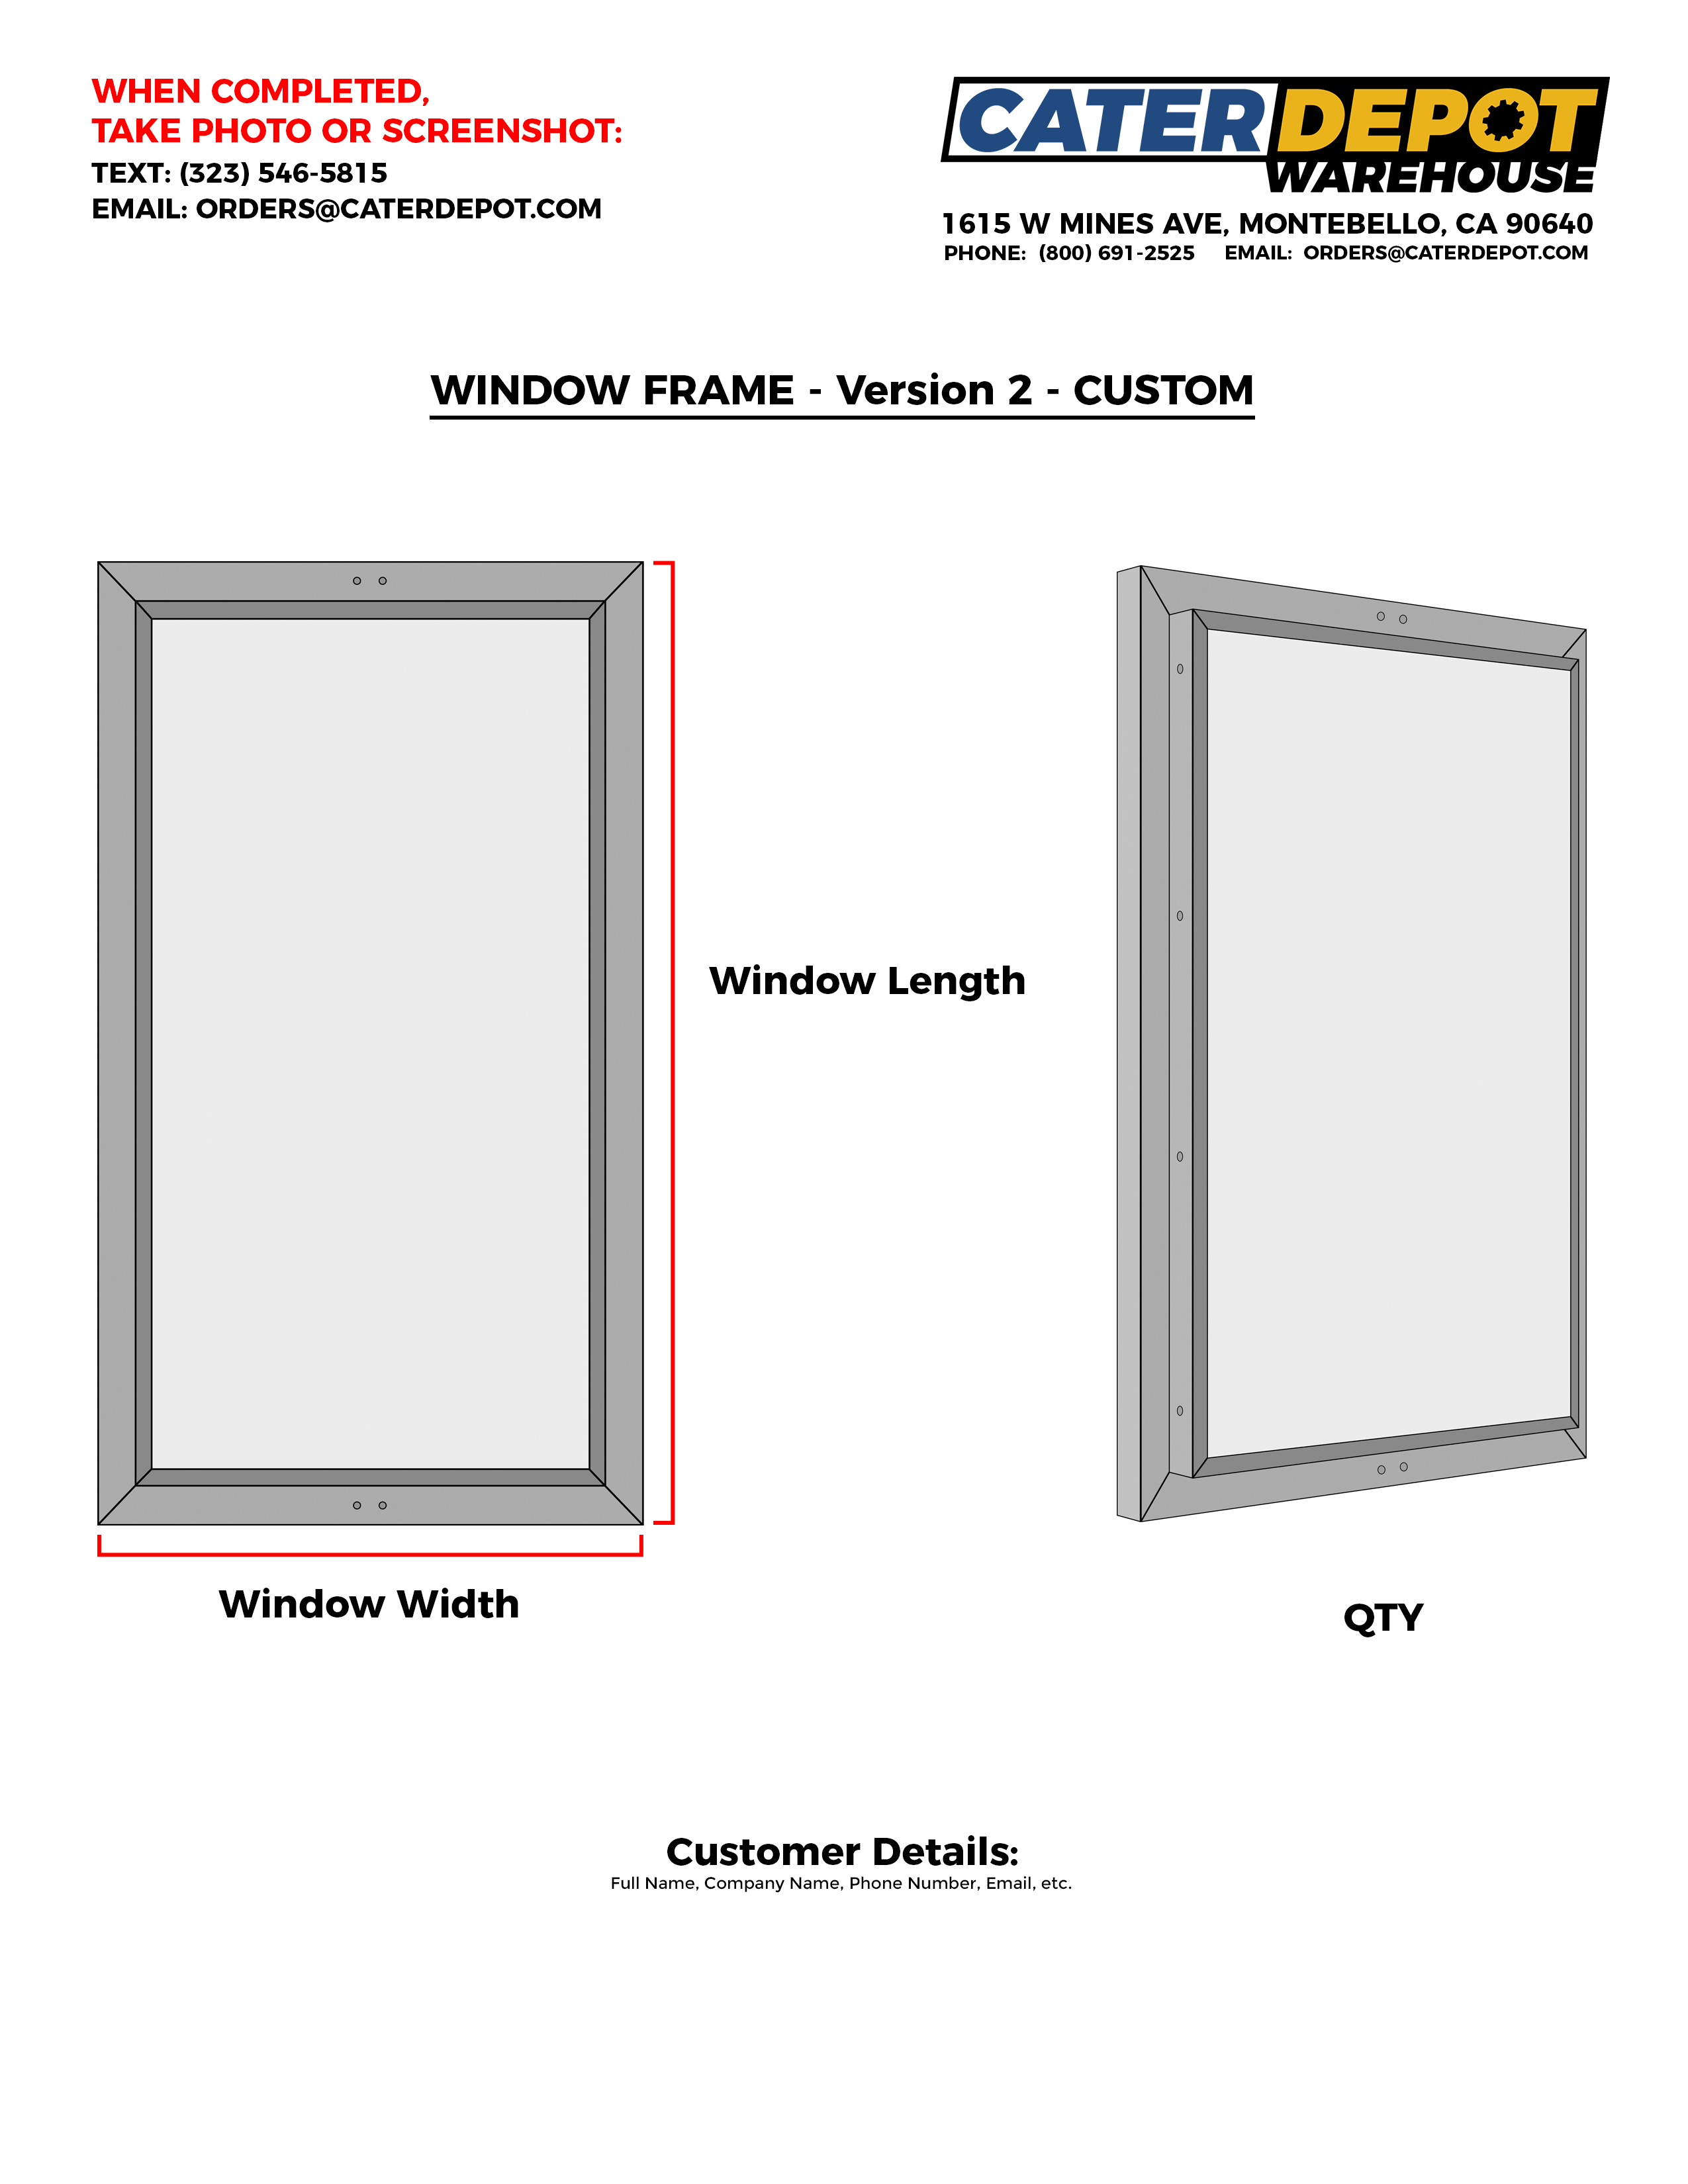 Custom Window Frame v2